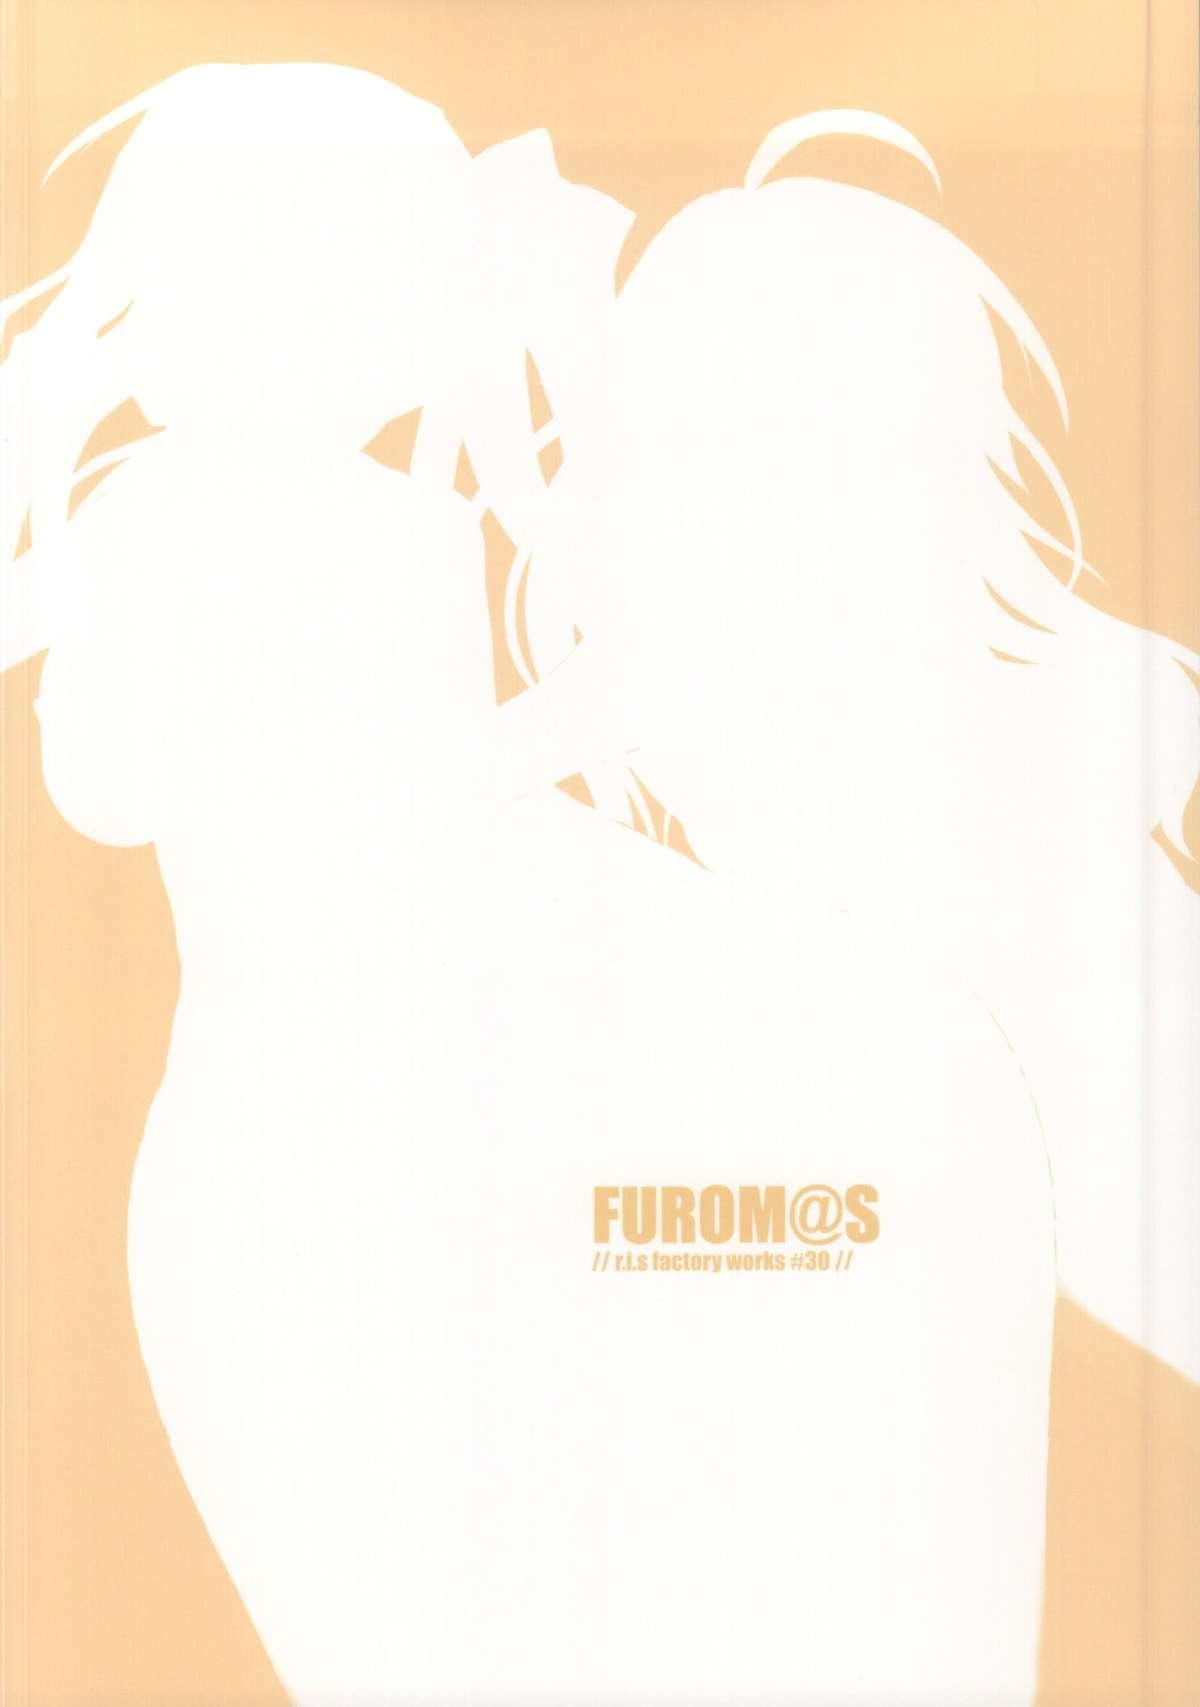 FUROM@S 23